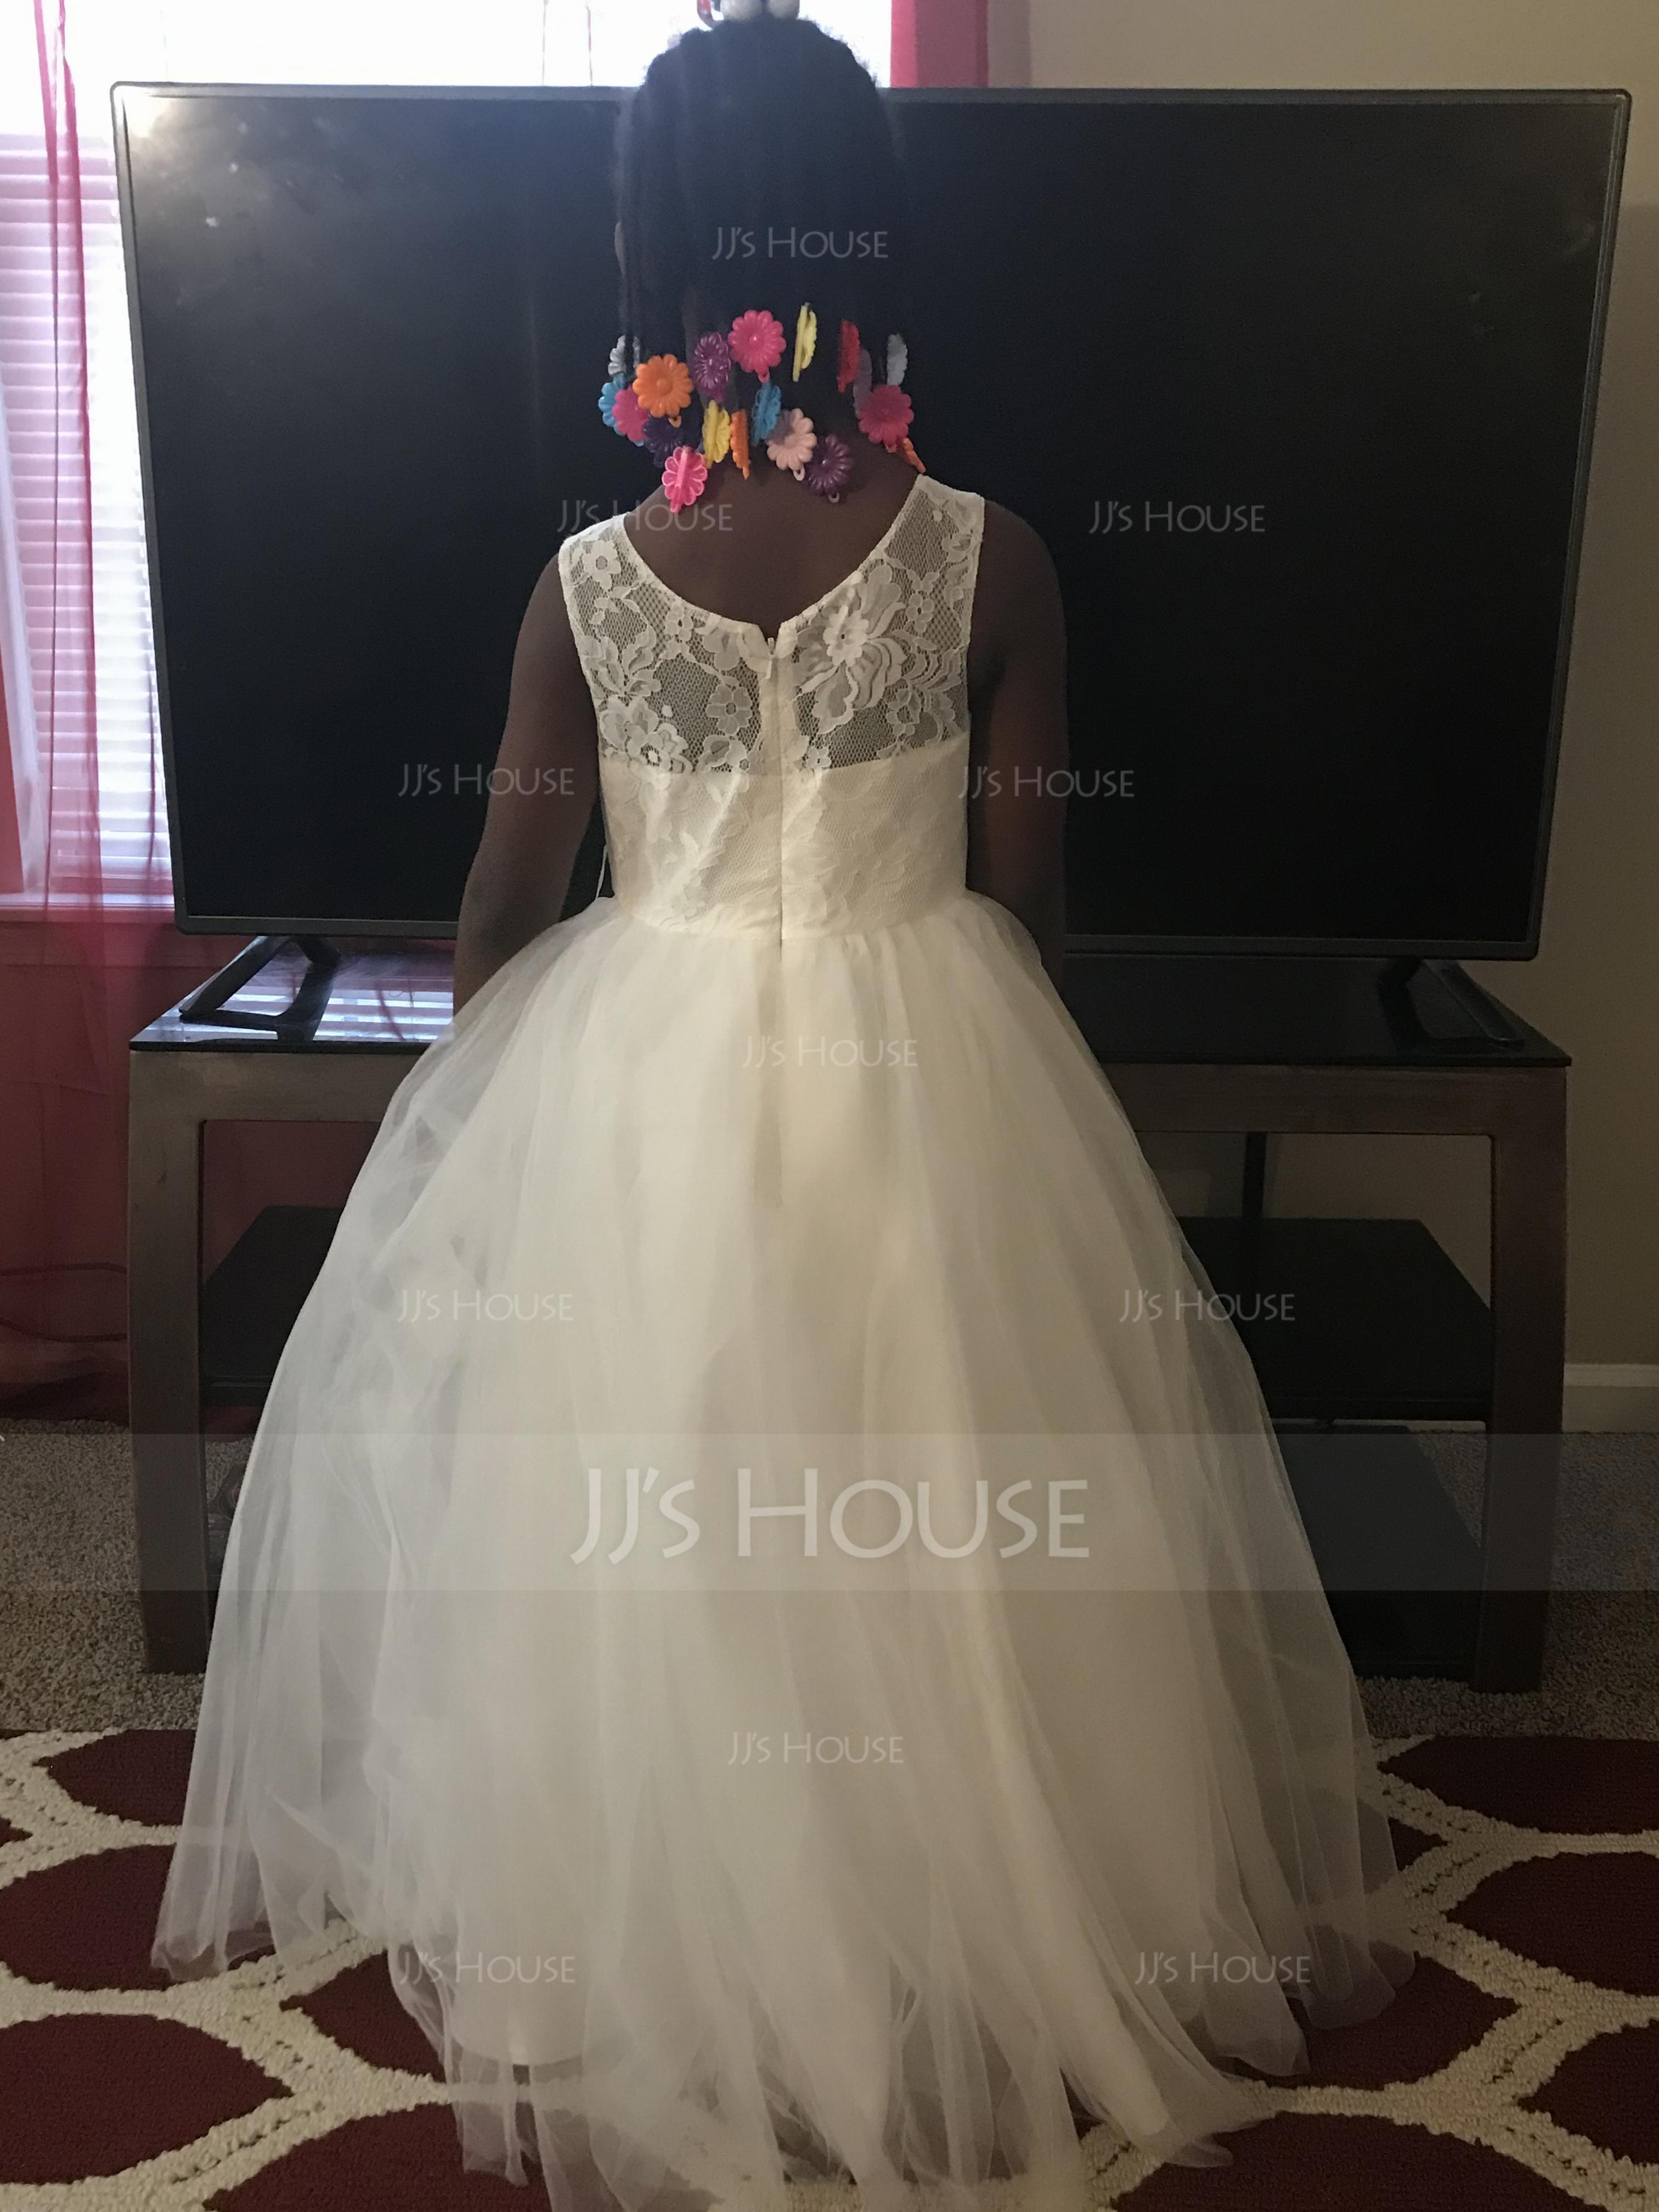 b4a71224df5 I love this dress it s so beautiful and both my flowers girls look amazing